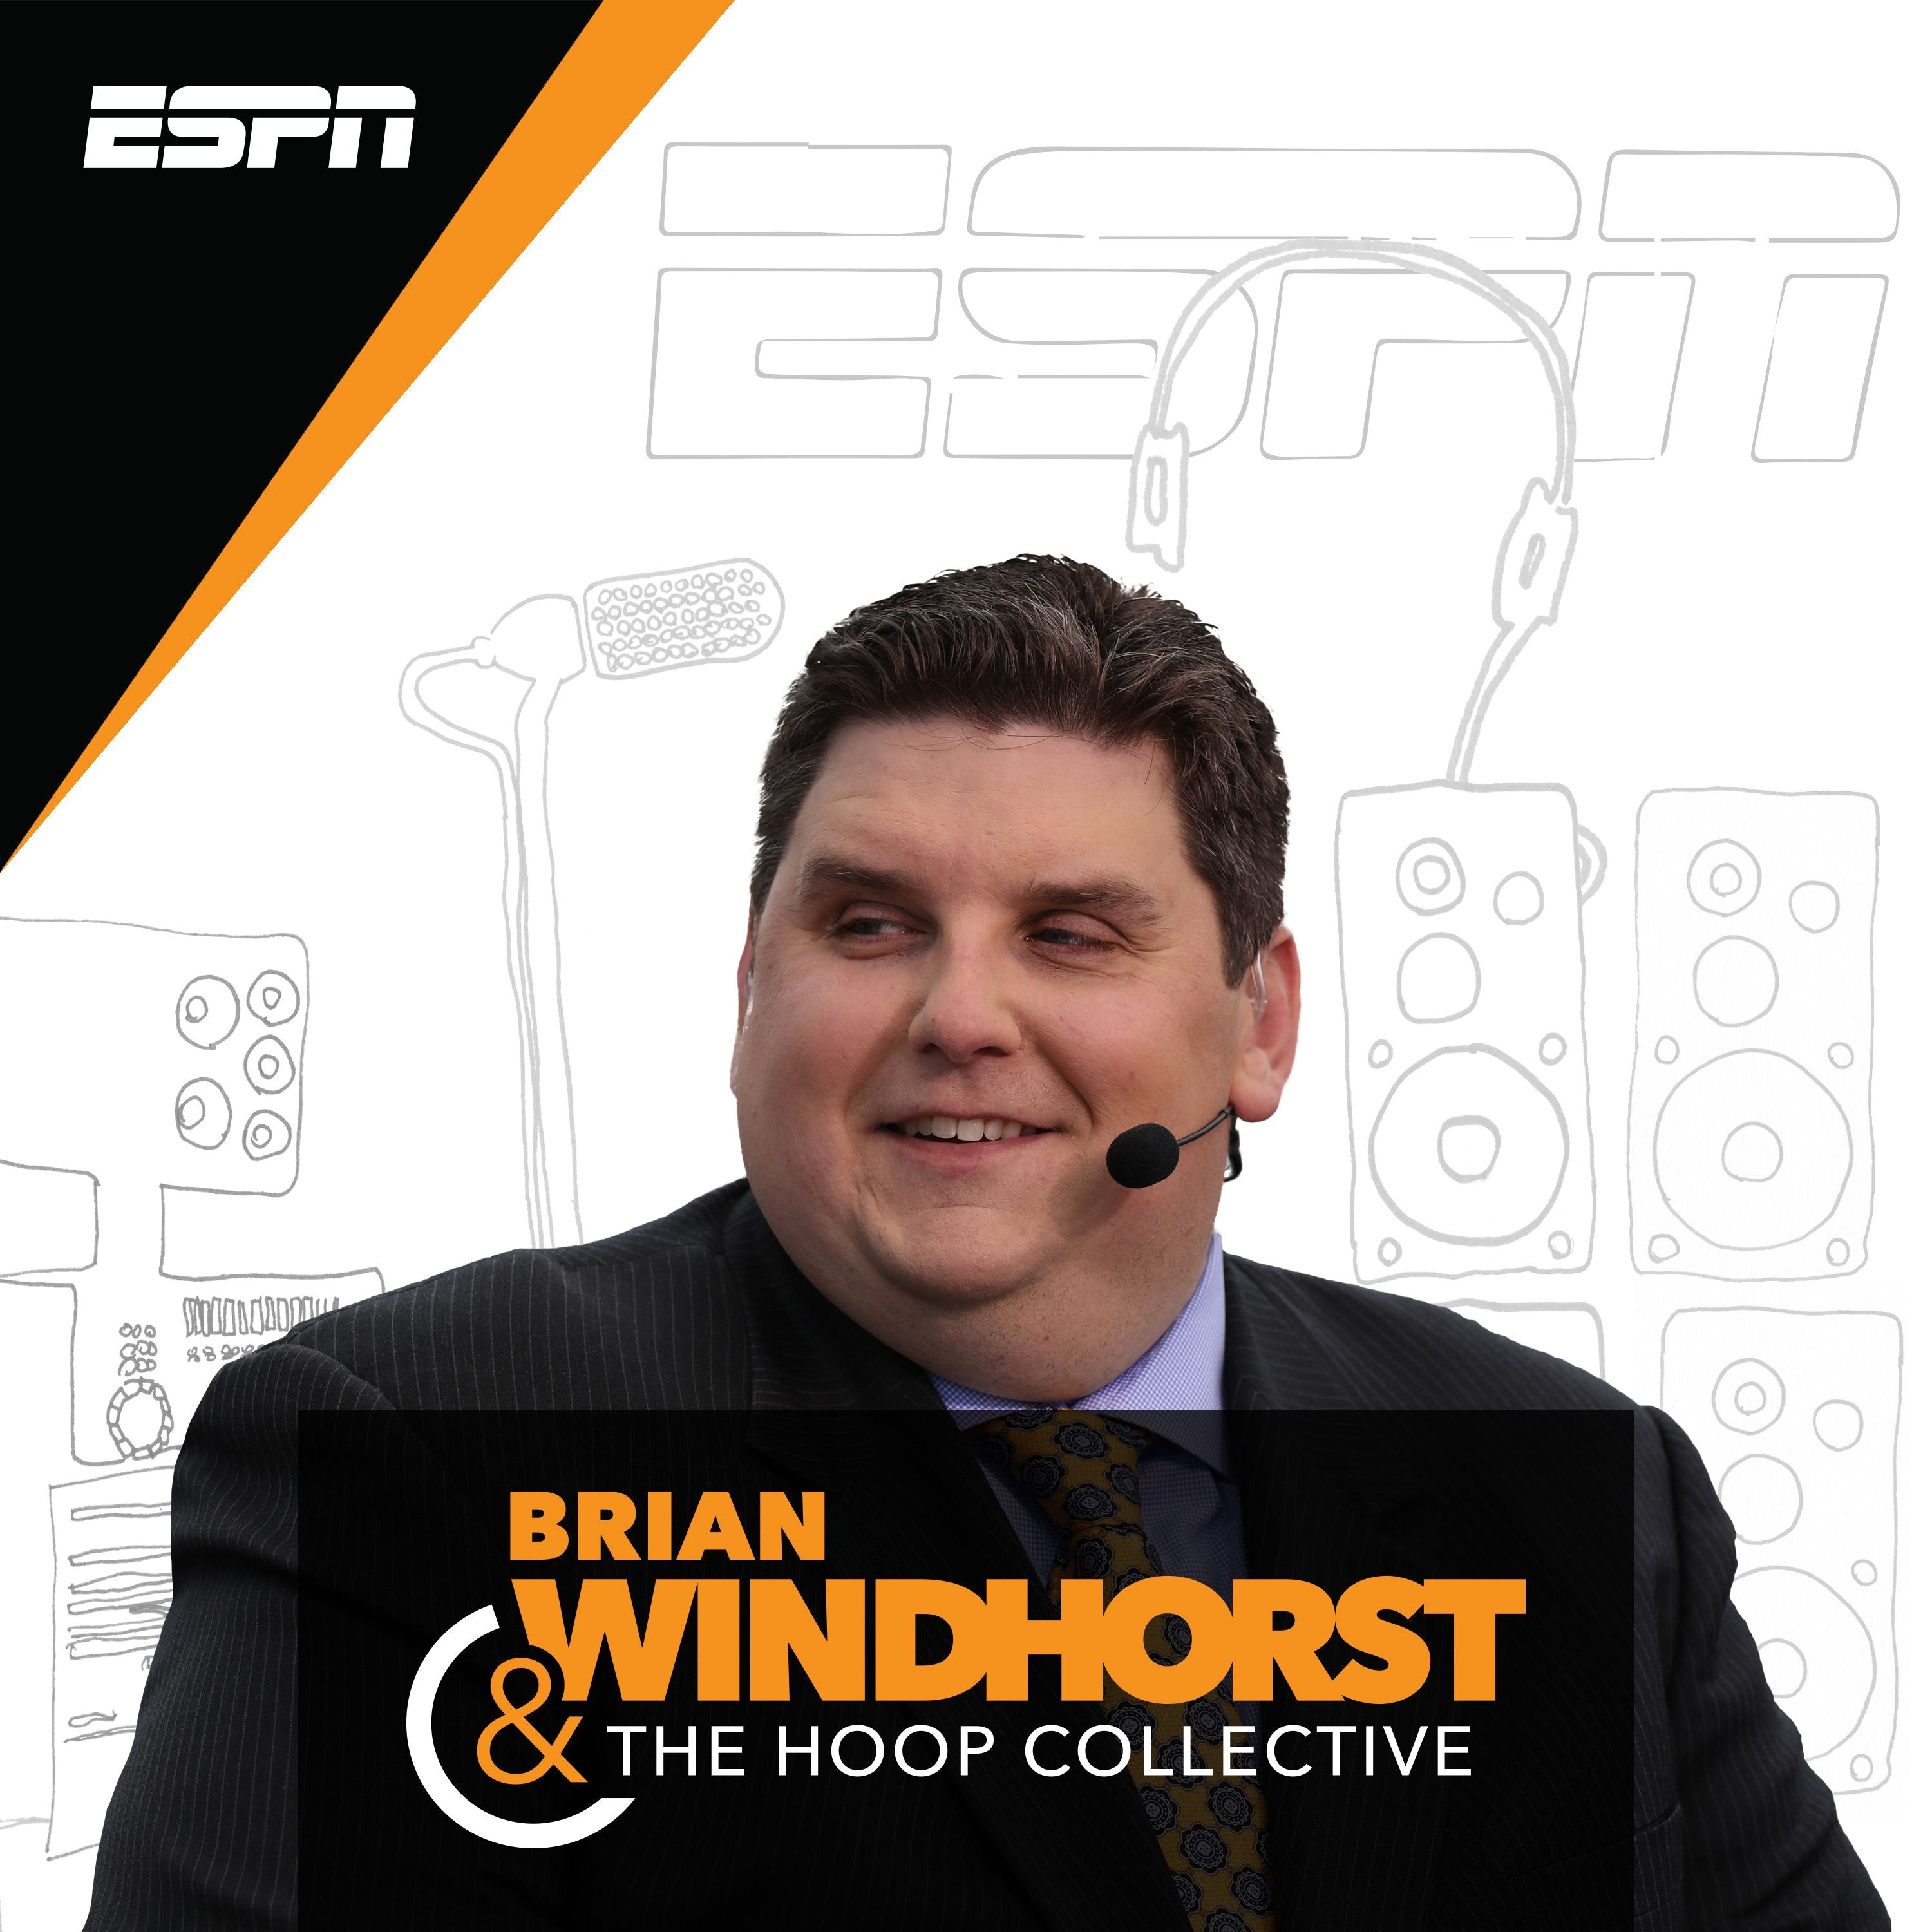 Brian Windhorst & The Hoop Collective podcast